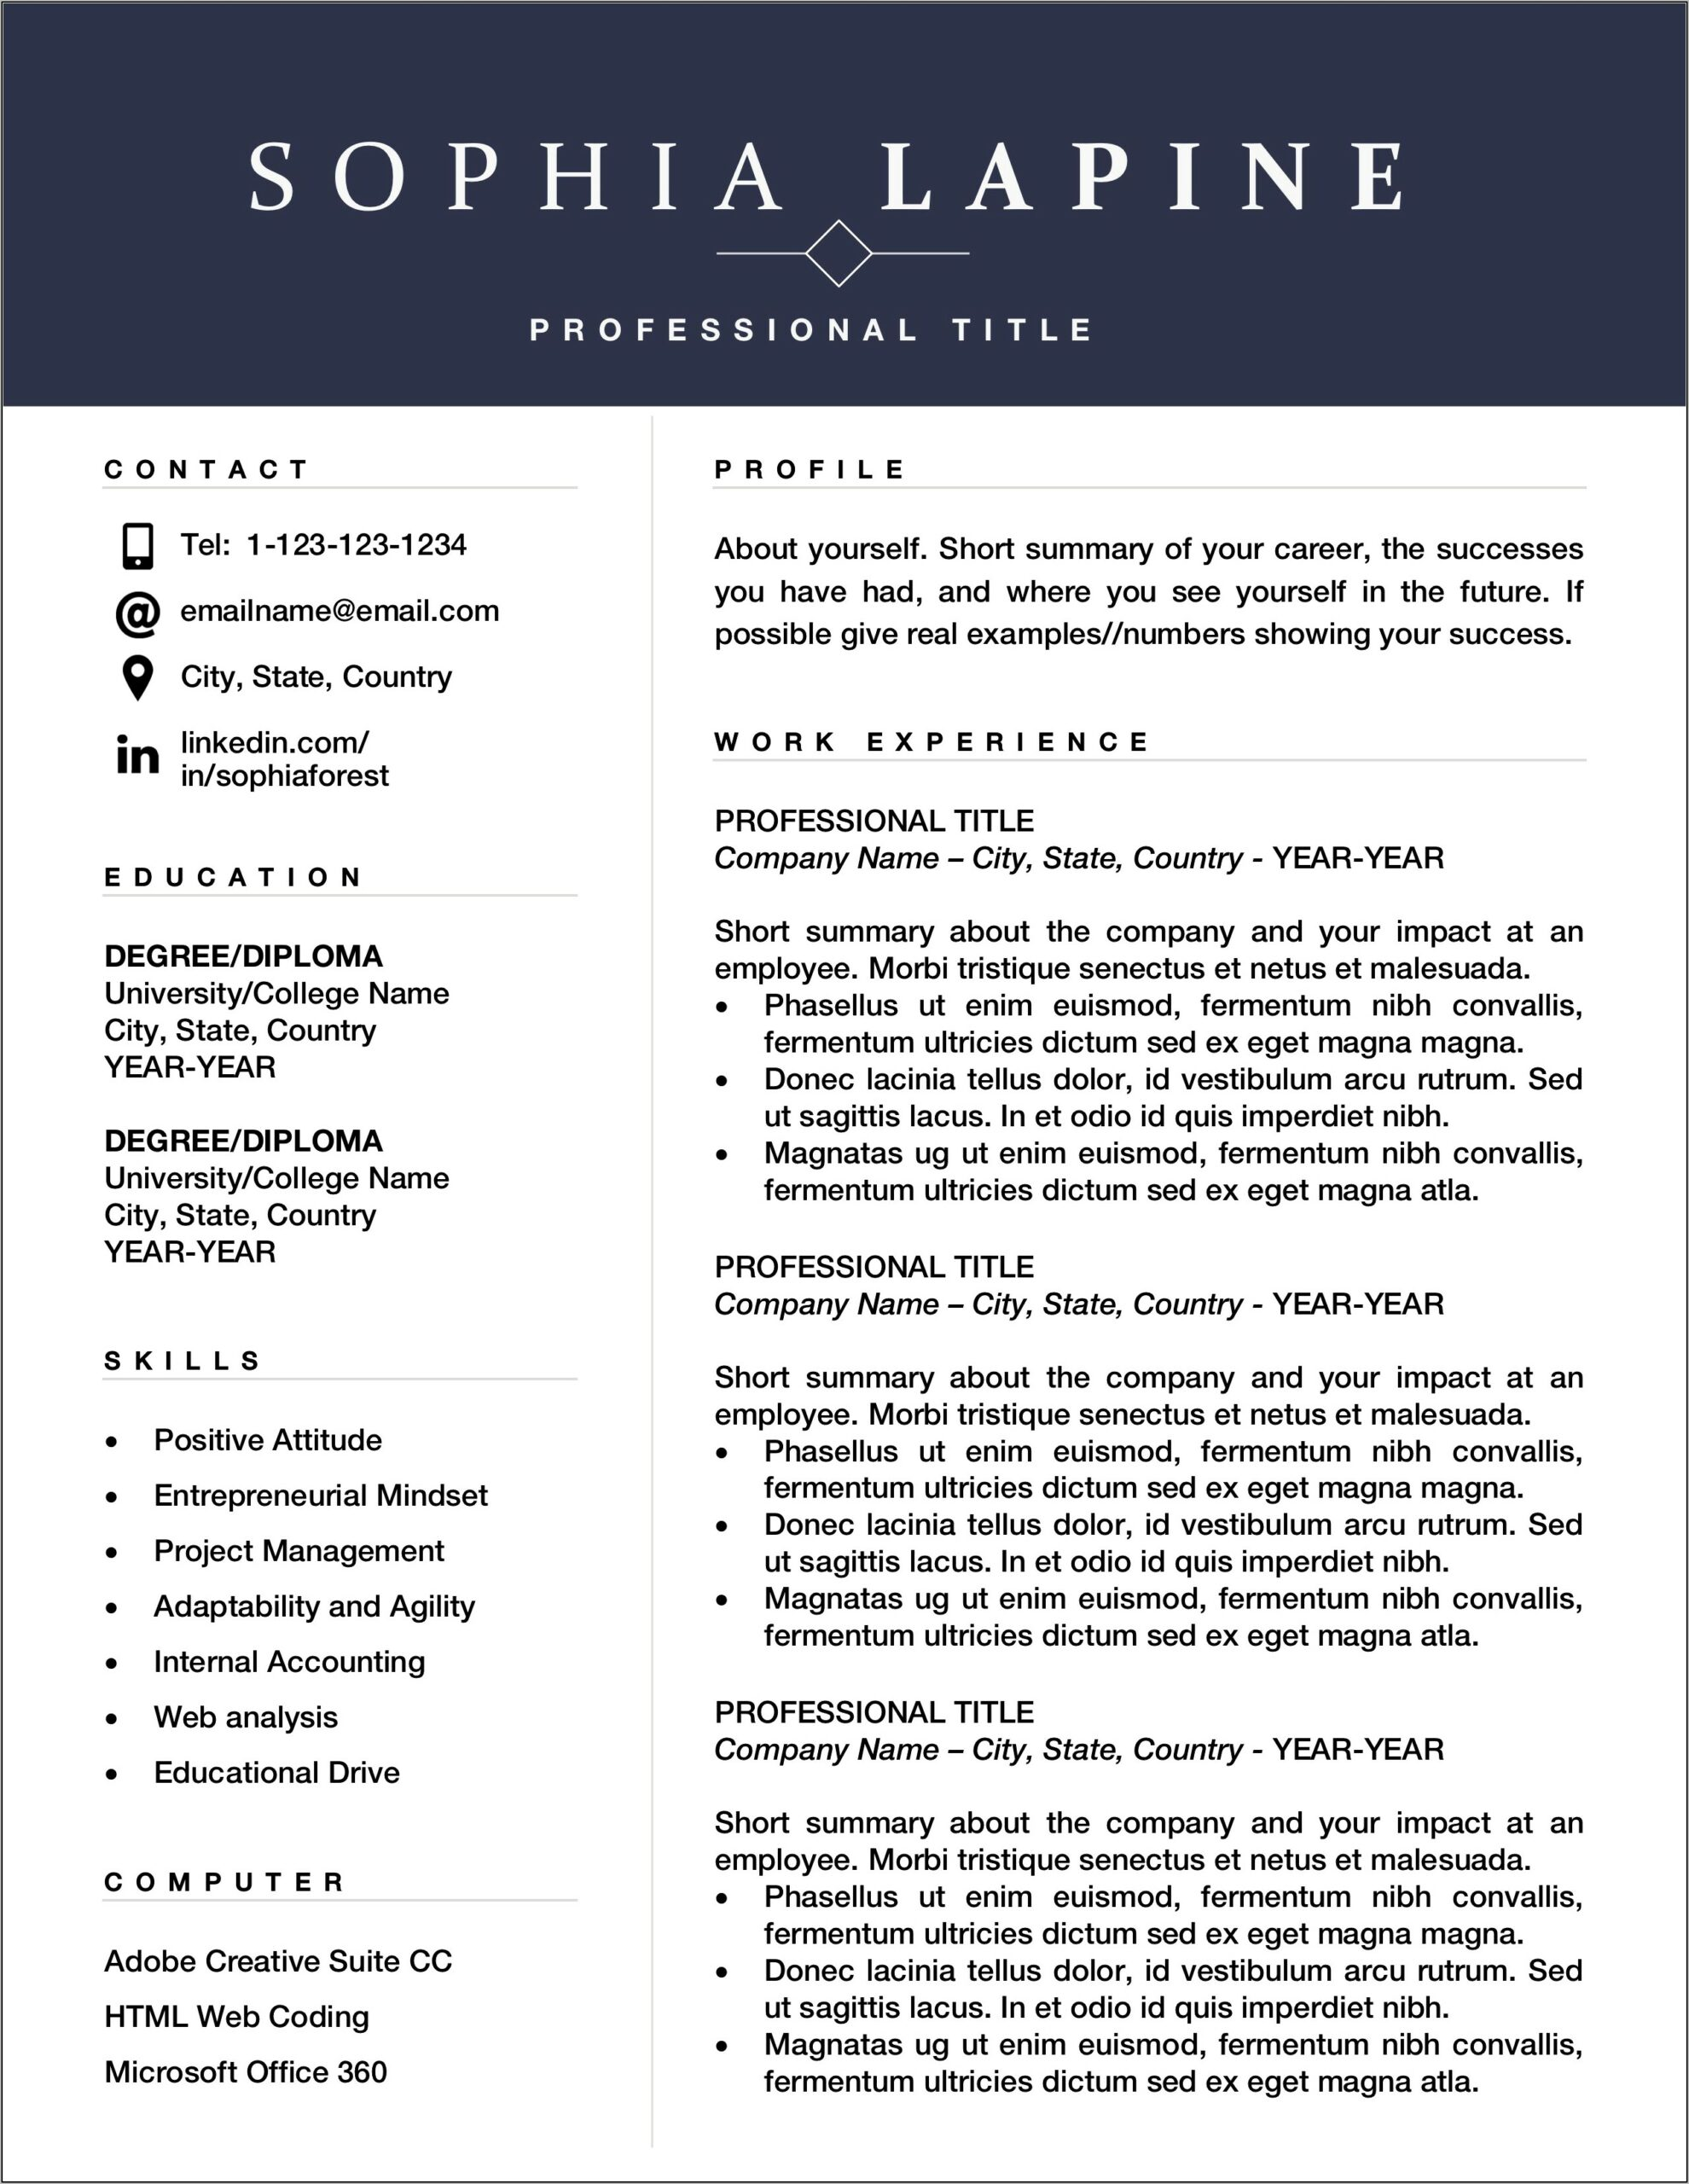 Word Templates For Resume Free Download